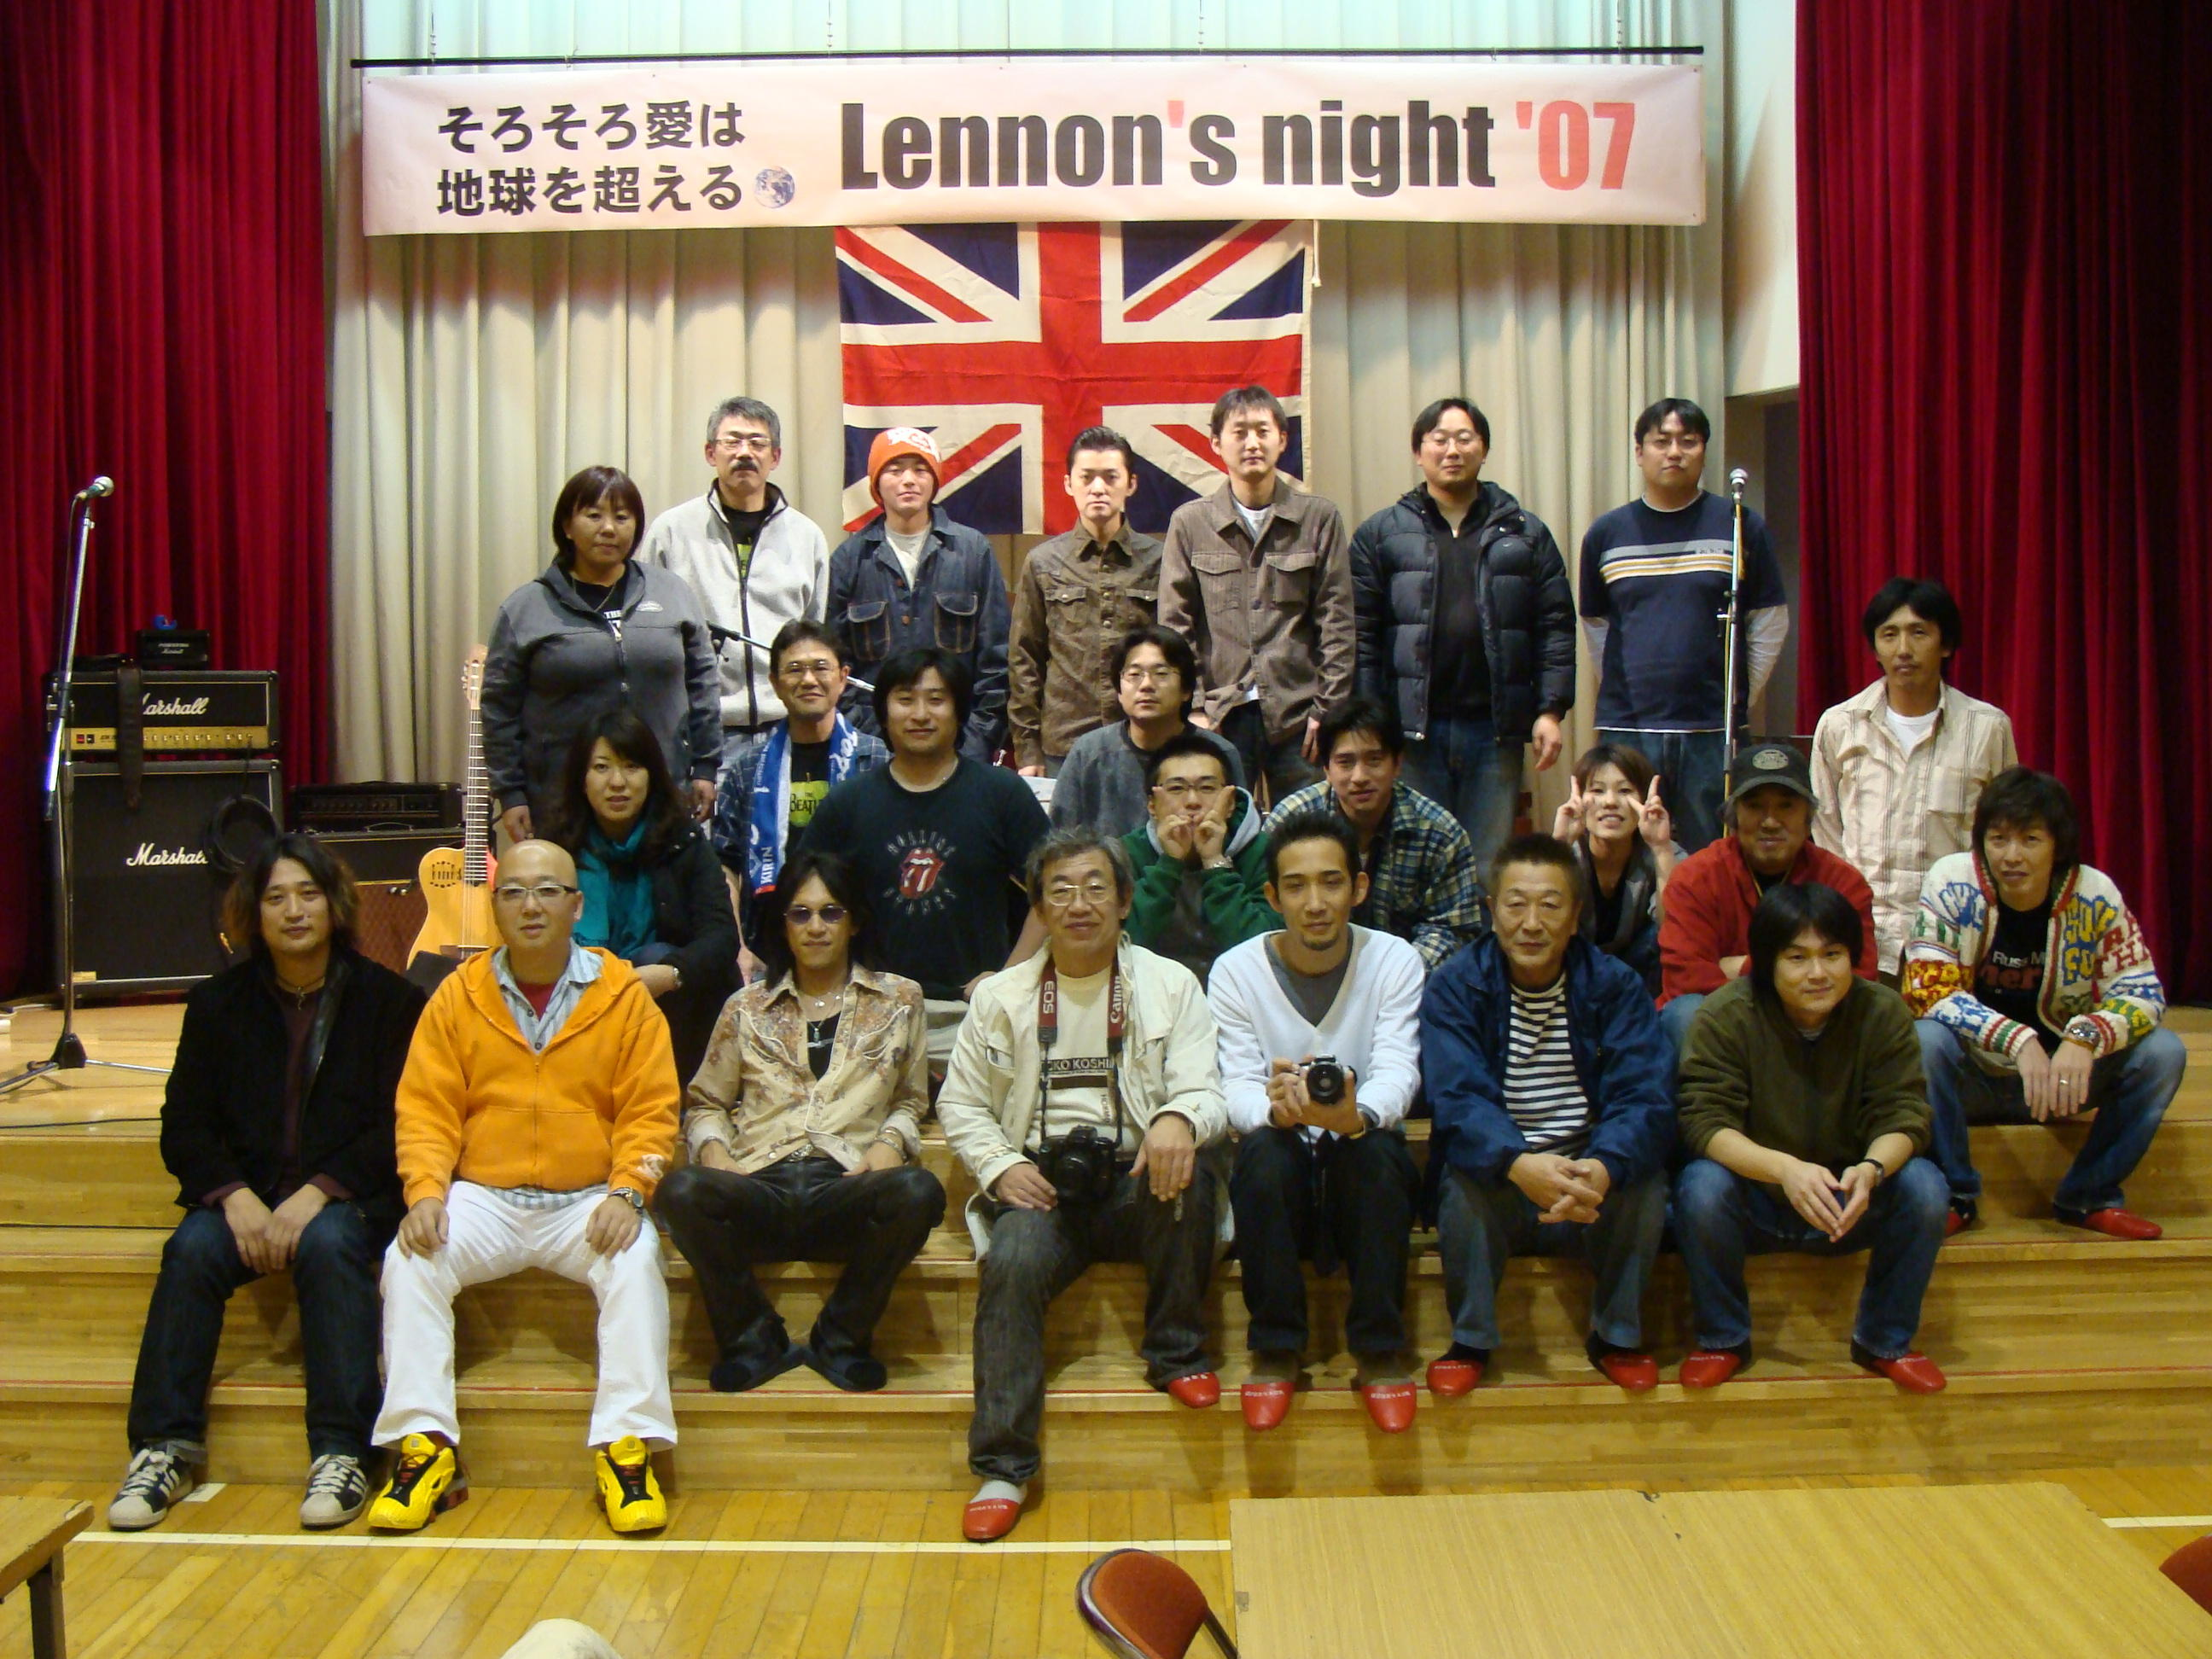 Lennon's night '08 開催予定